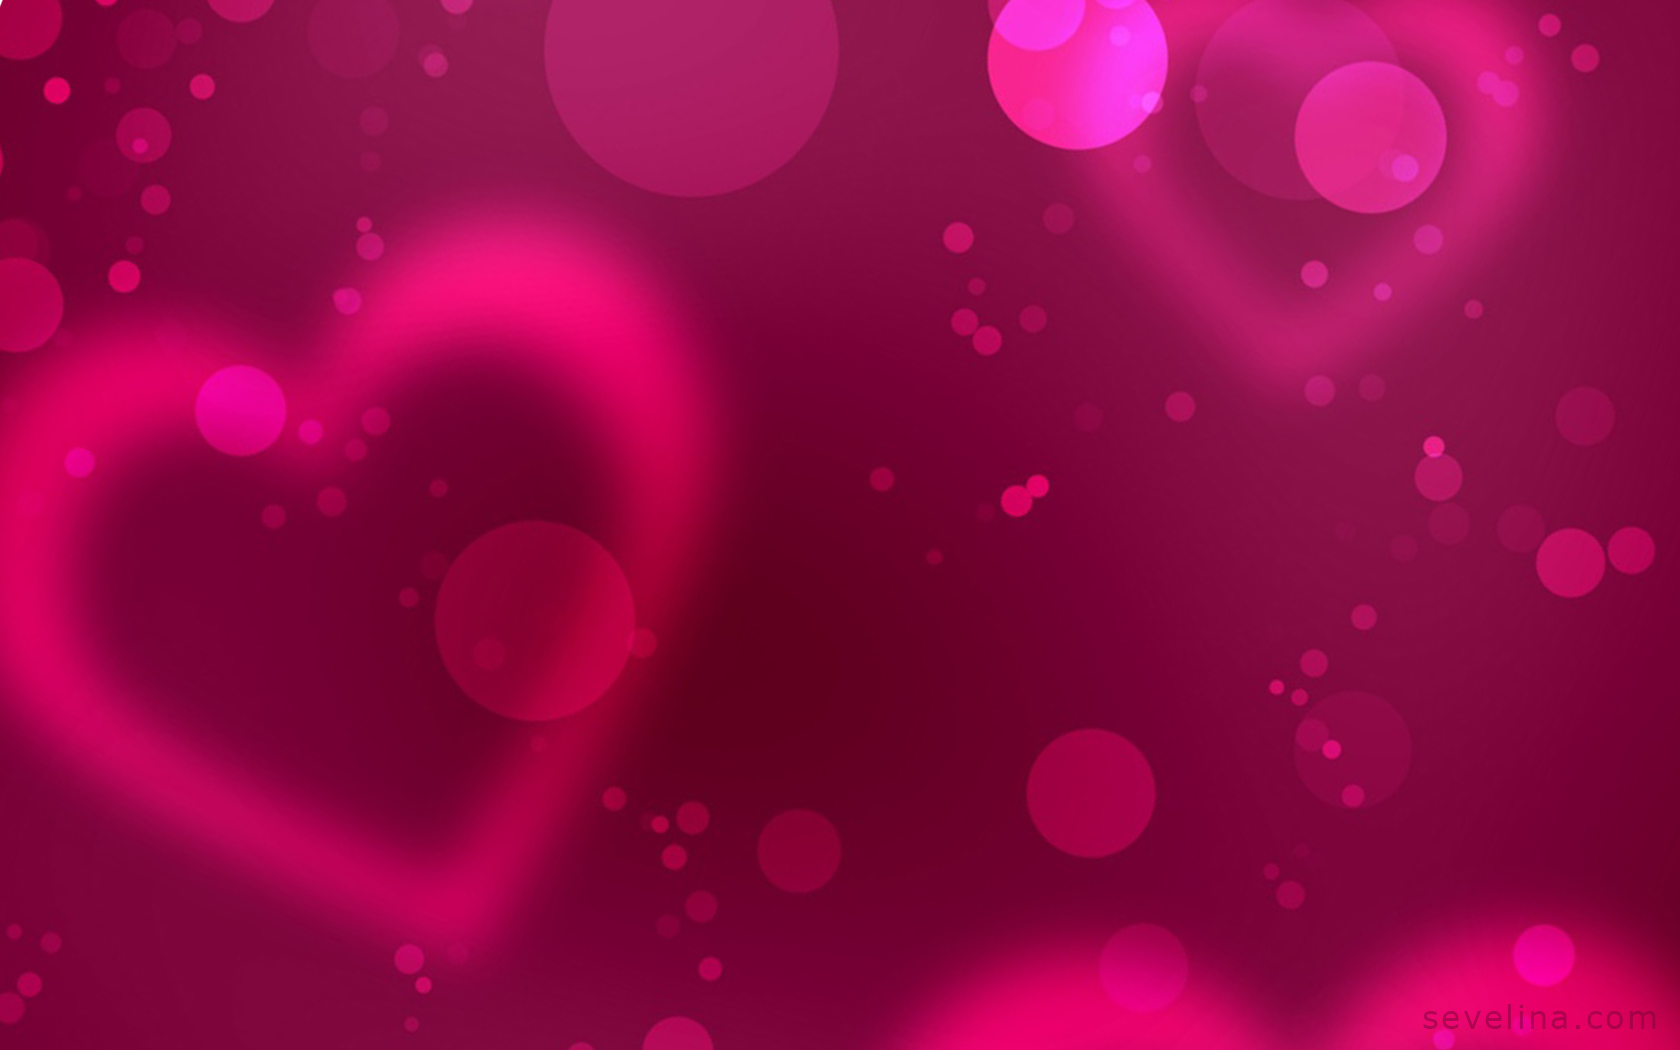 Love Wallpapers New 2014 : Top 14 amazing Valentines day wallpaper 2014 ? Sevelina ...